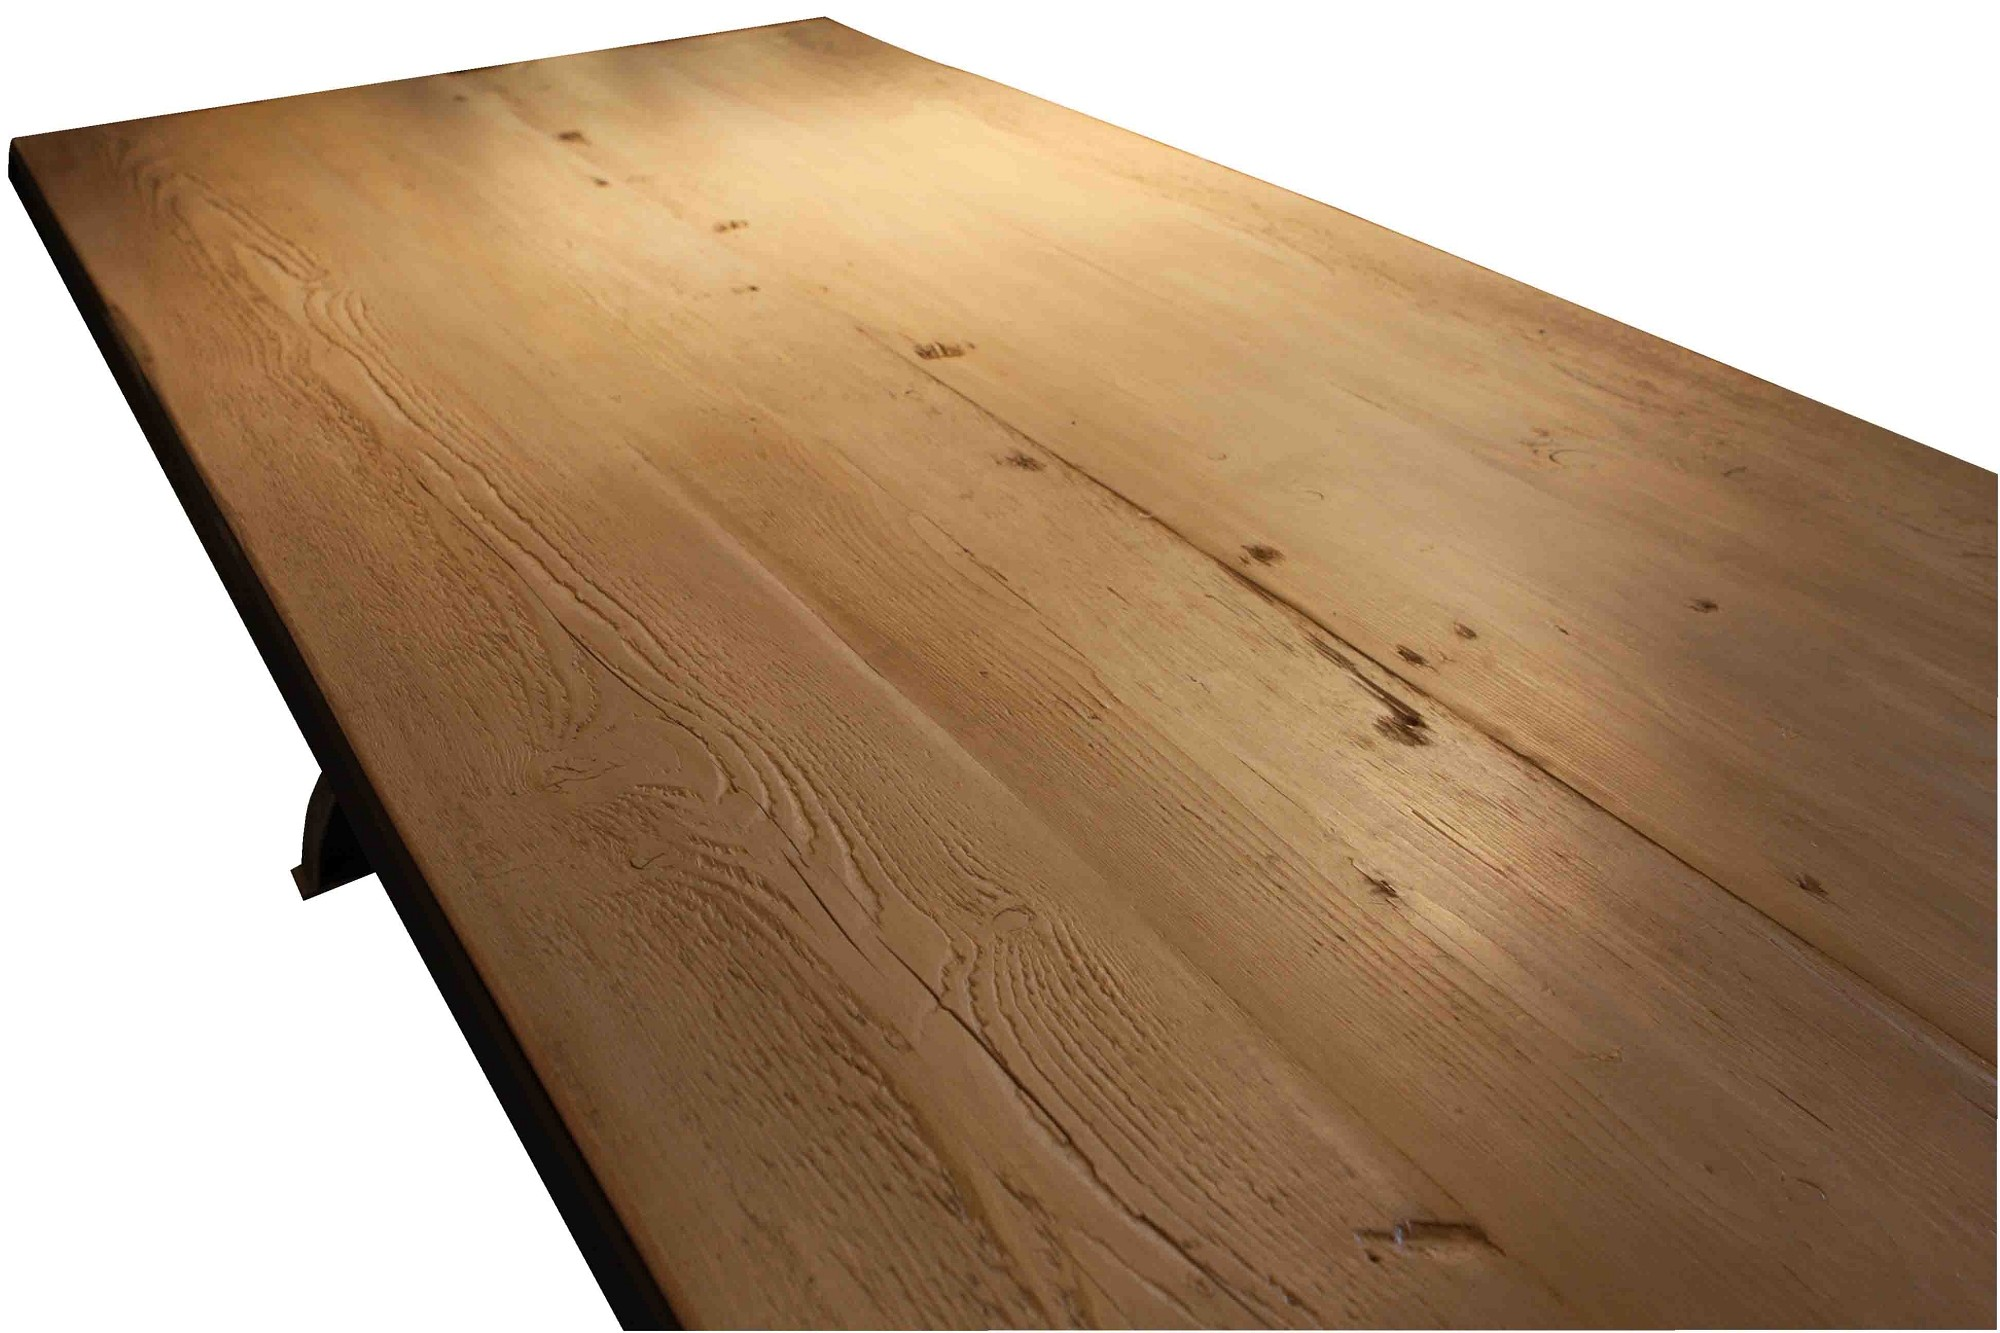 table top background hd. 2000x1333 670x334 px dining table4 of wood table top blanks background hd